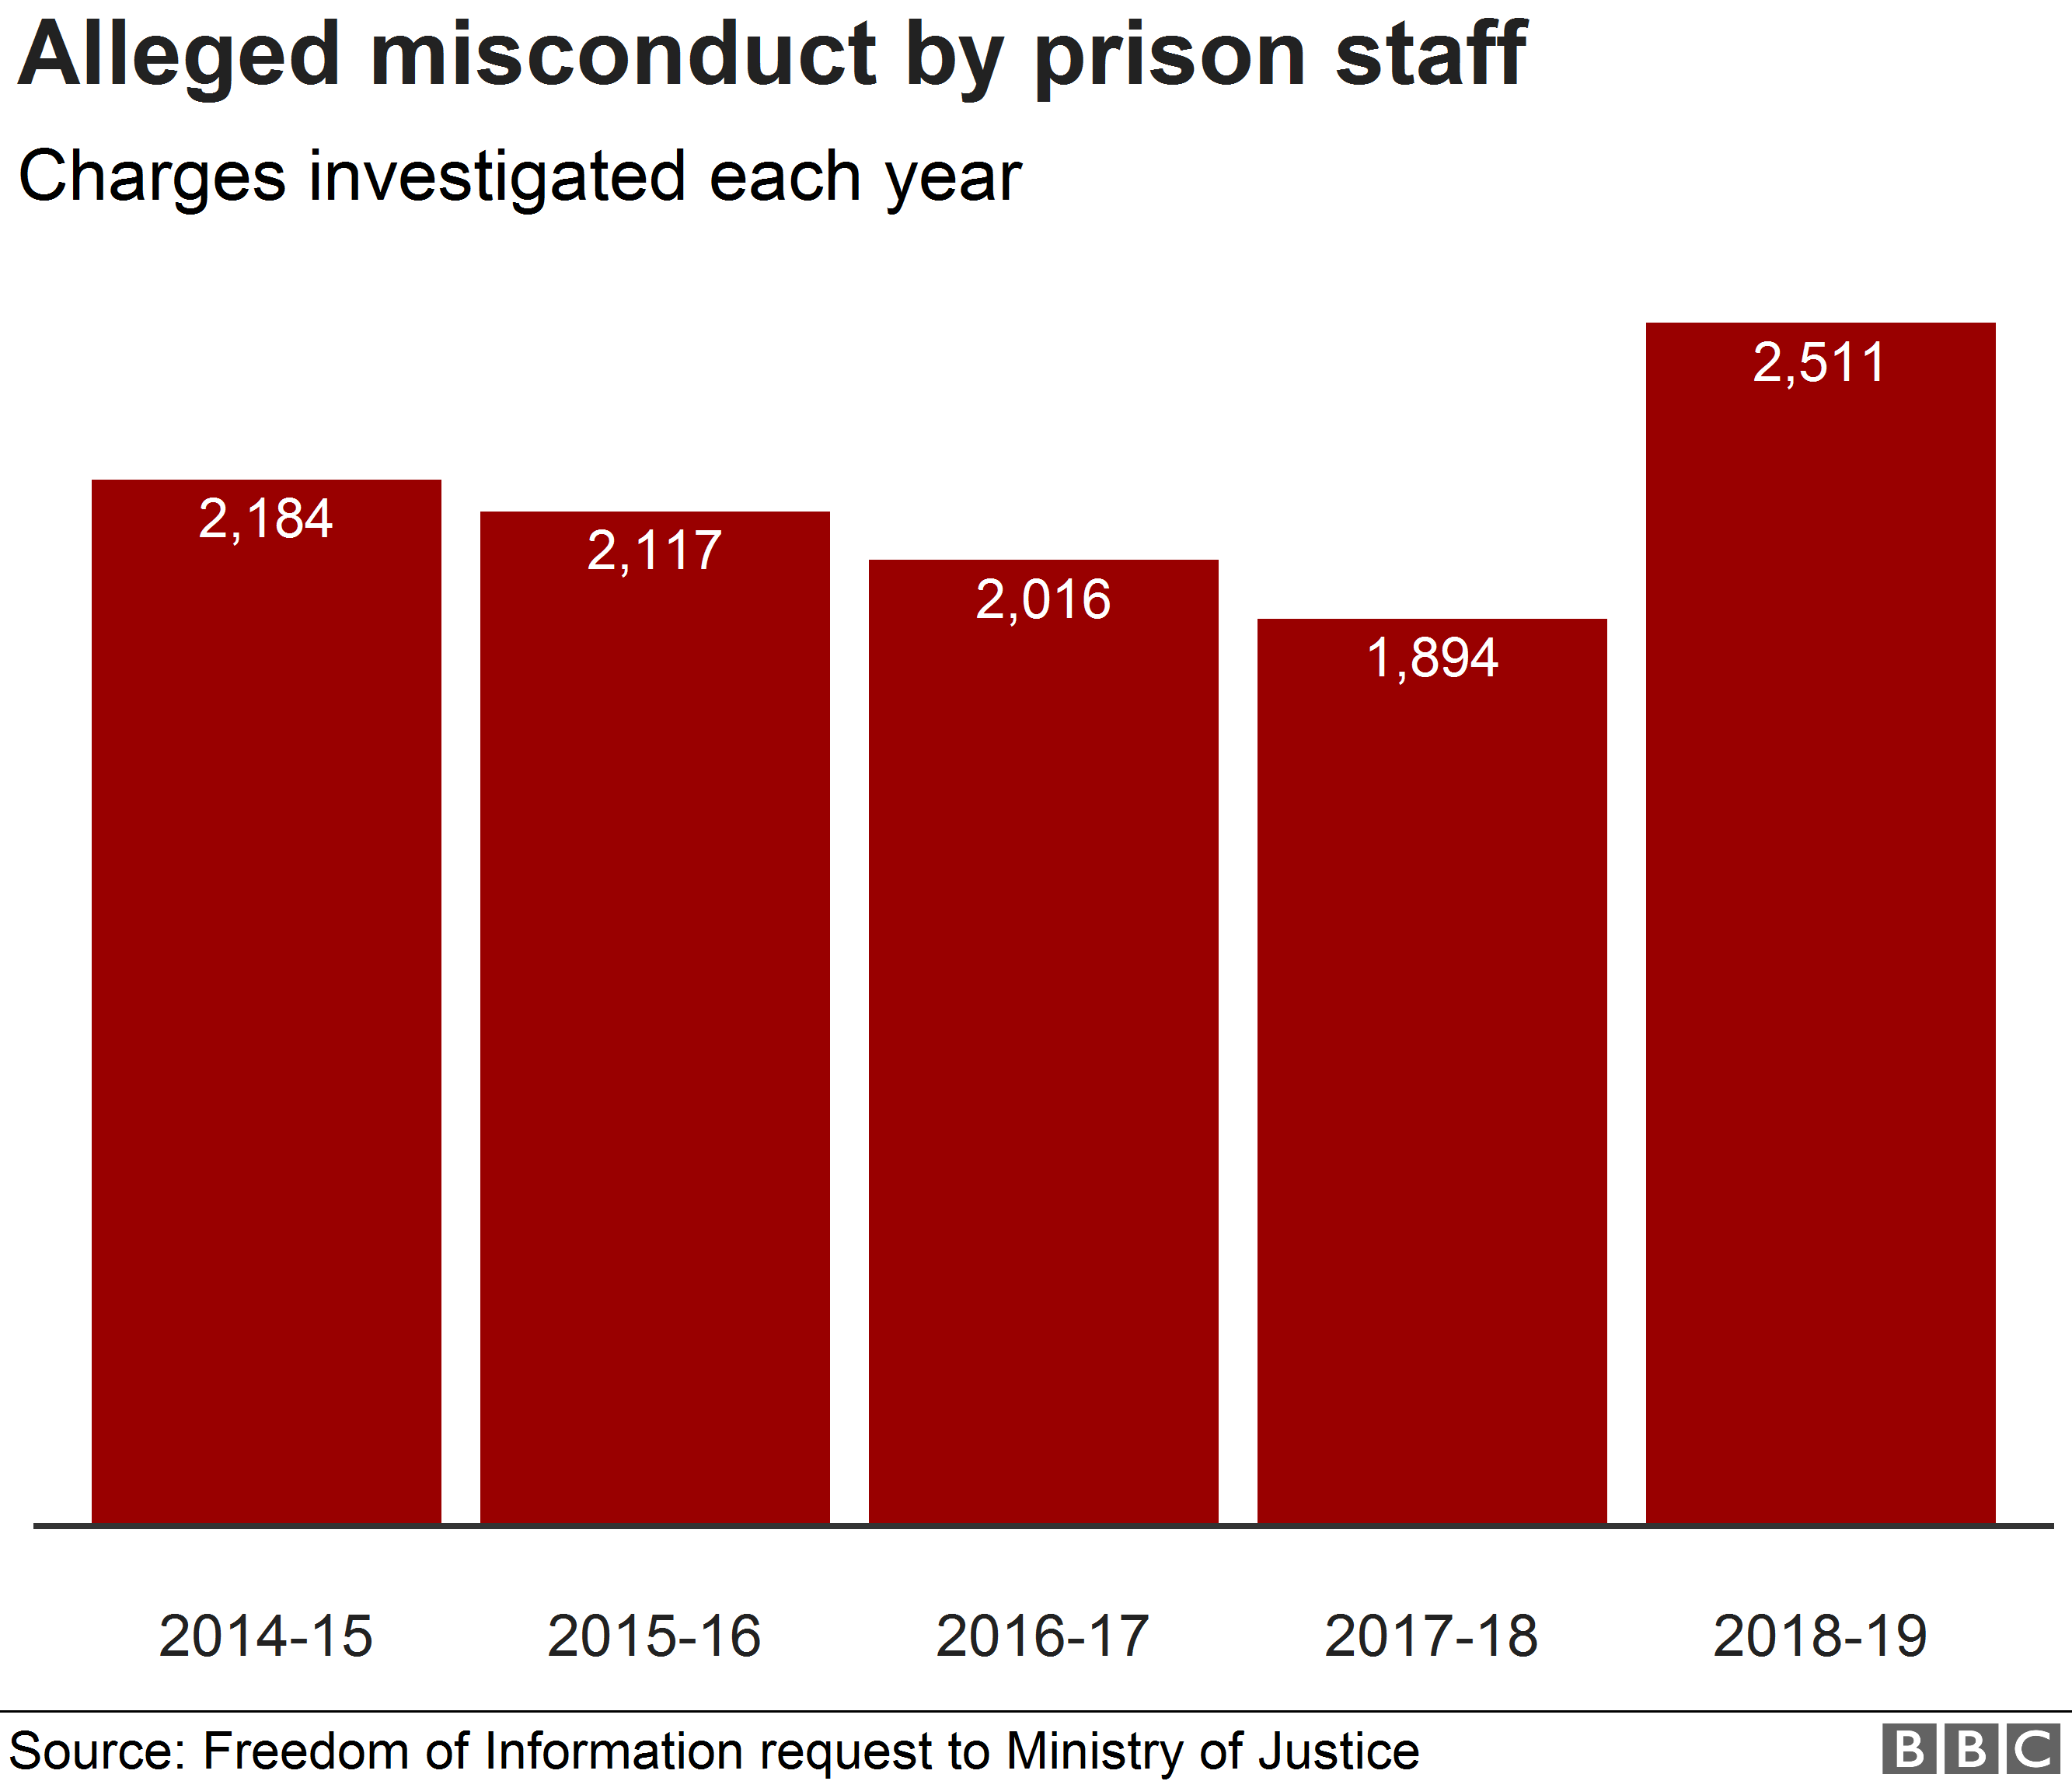 Chart showing investigations into alleged misconduct by prison staff